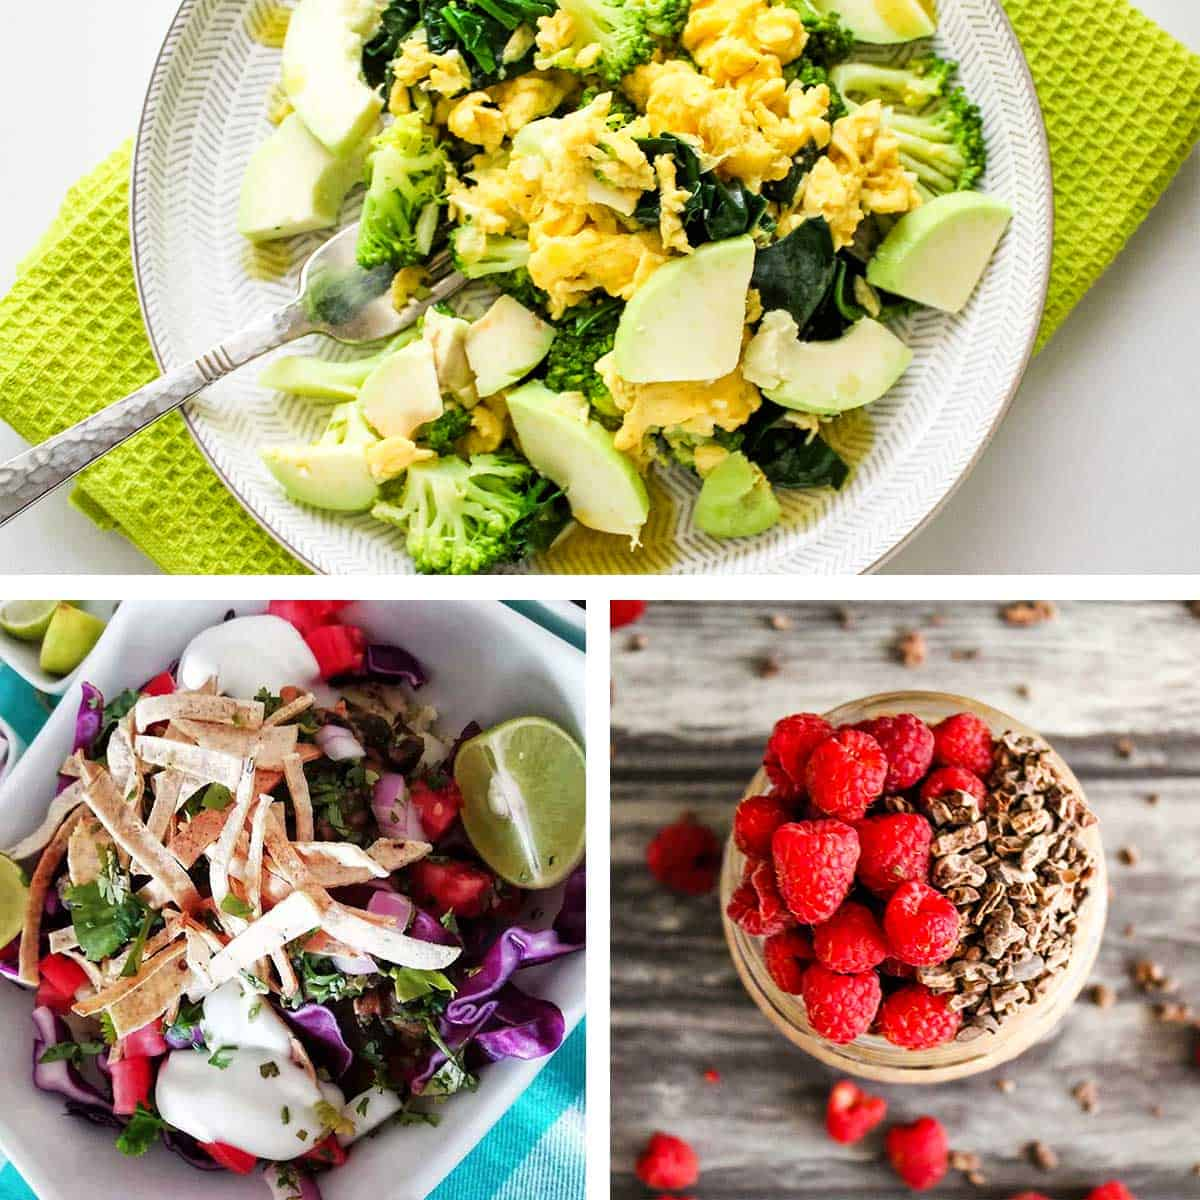 Graphic with three photos of food on plate